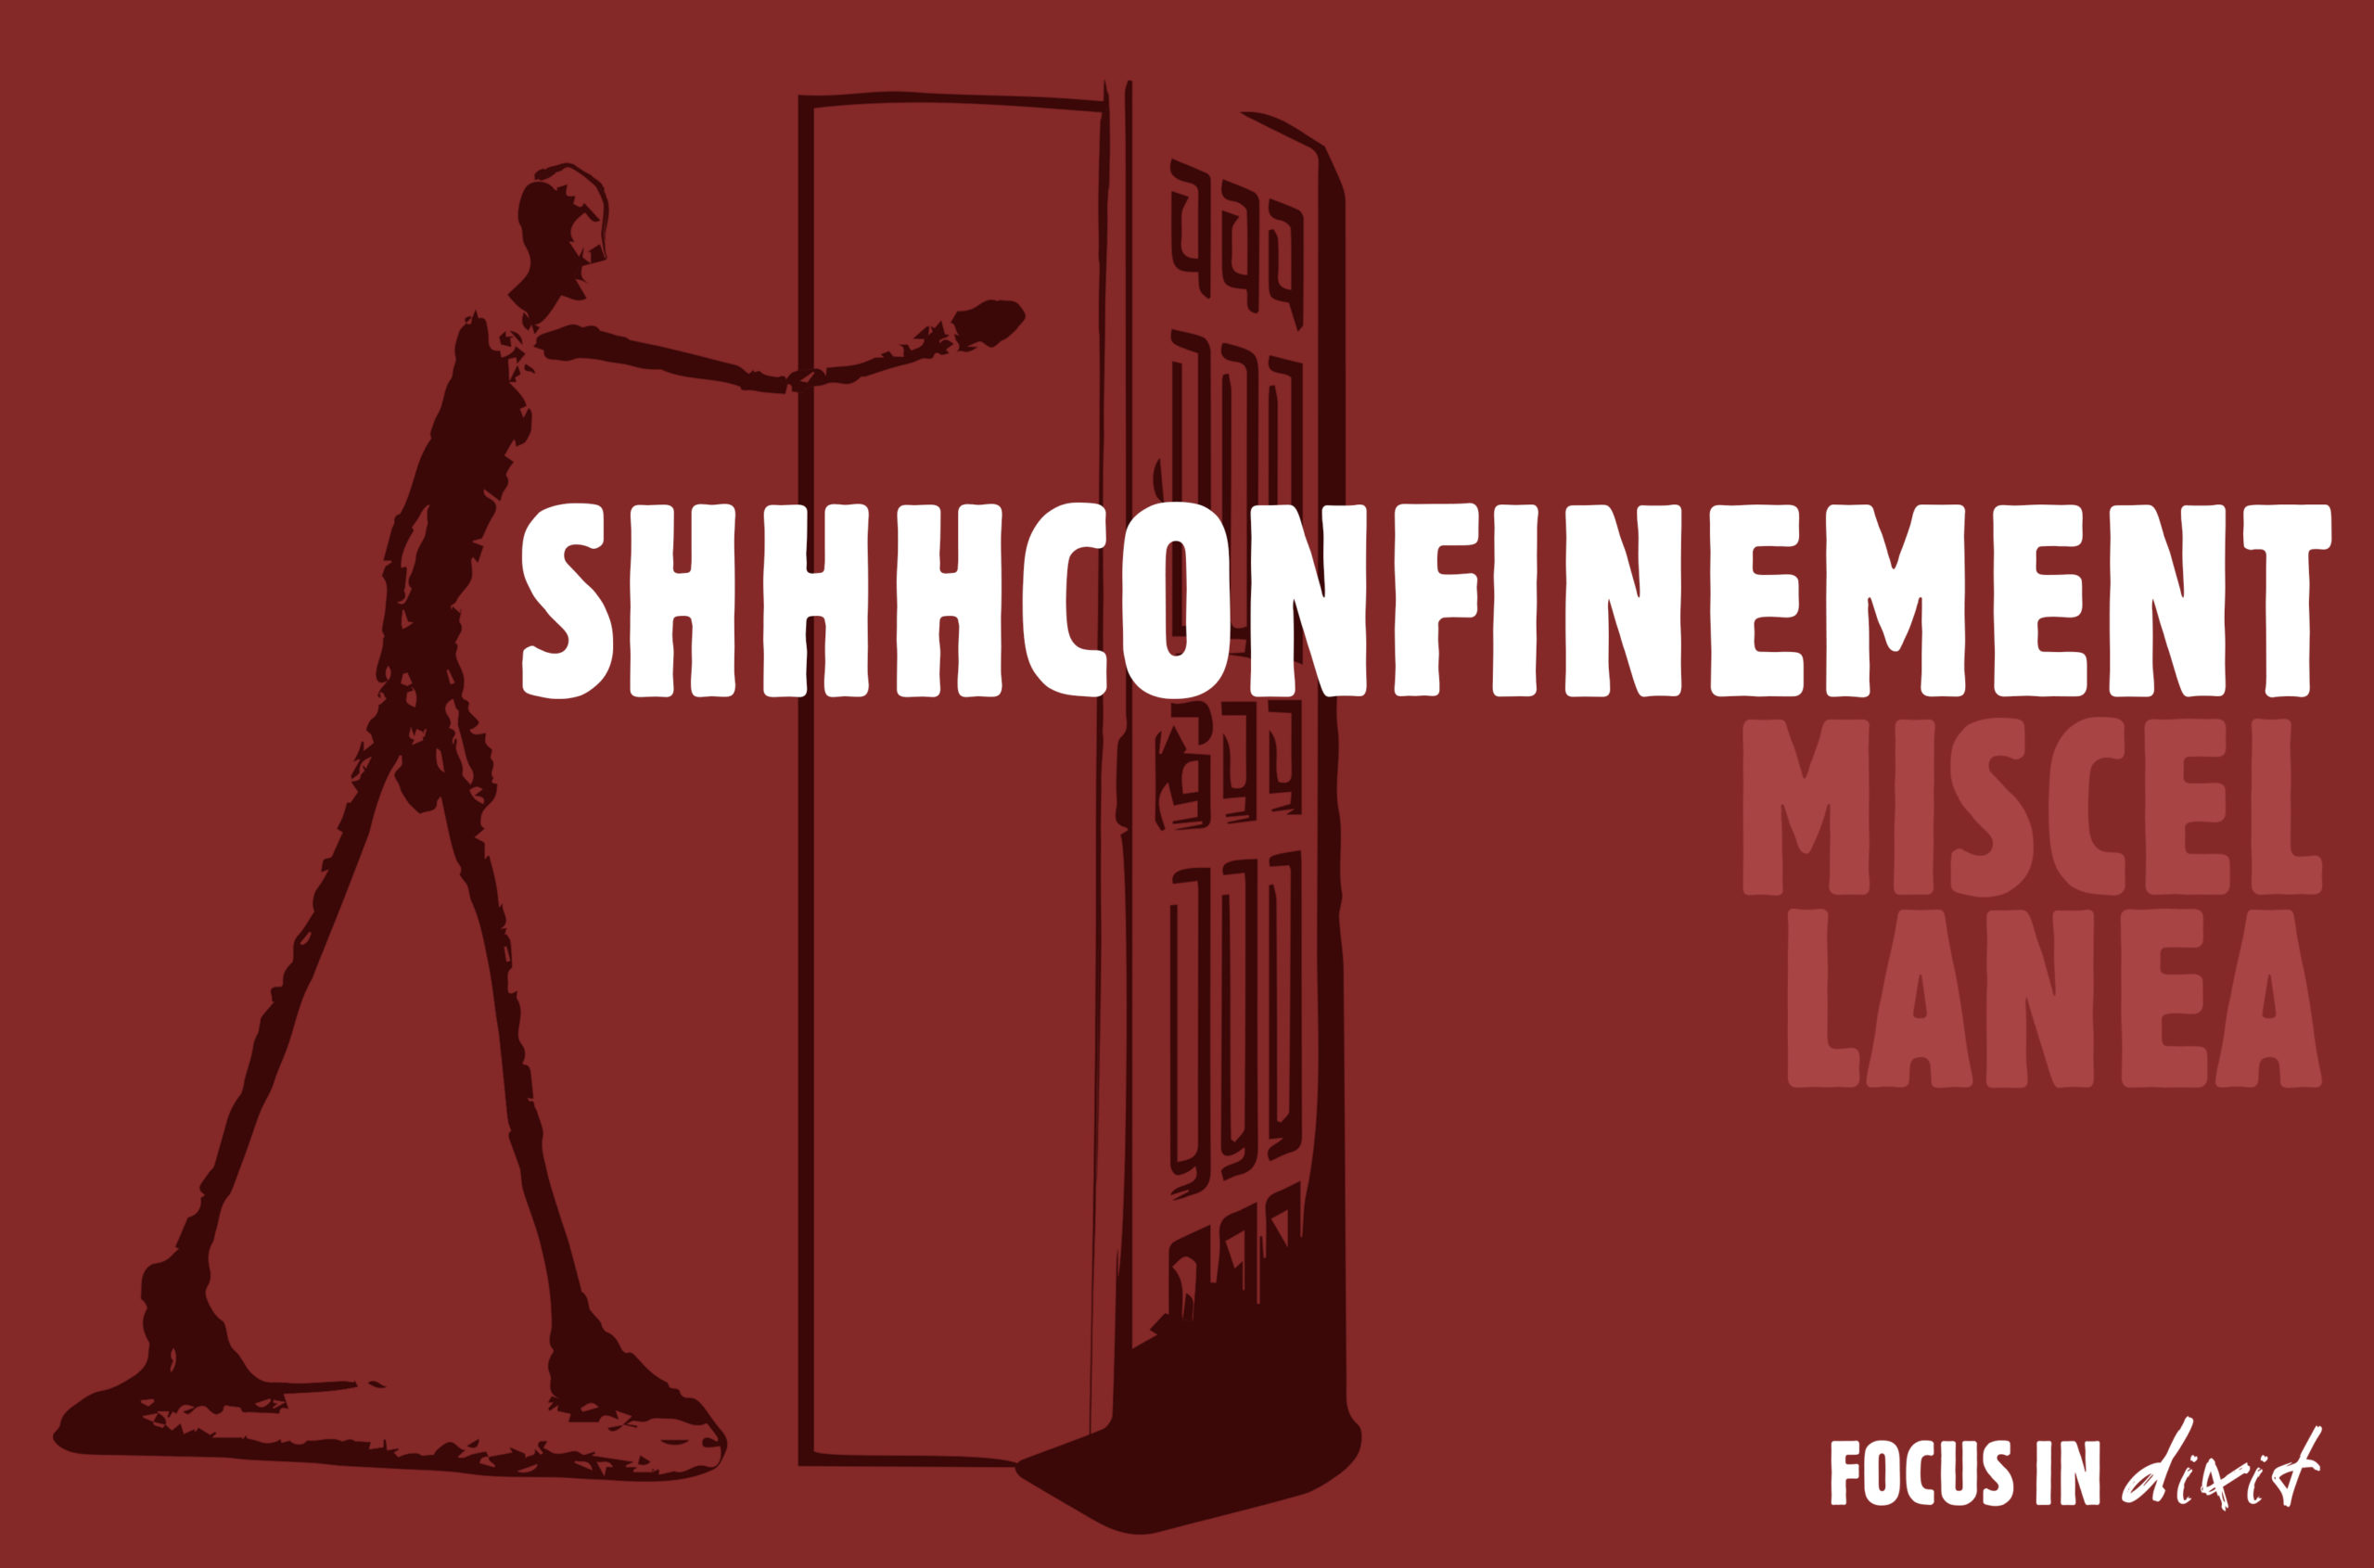 shhhconfinement